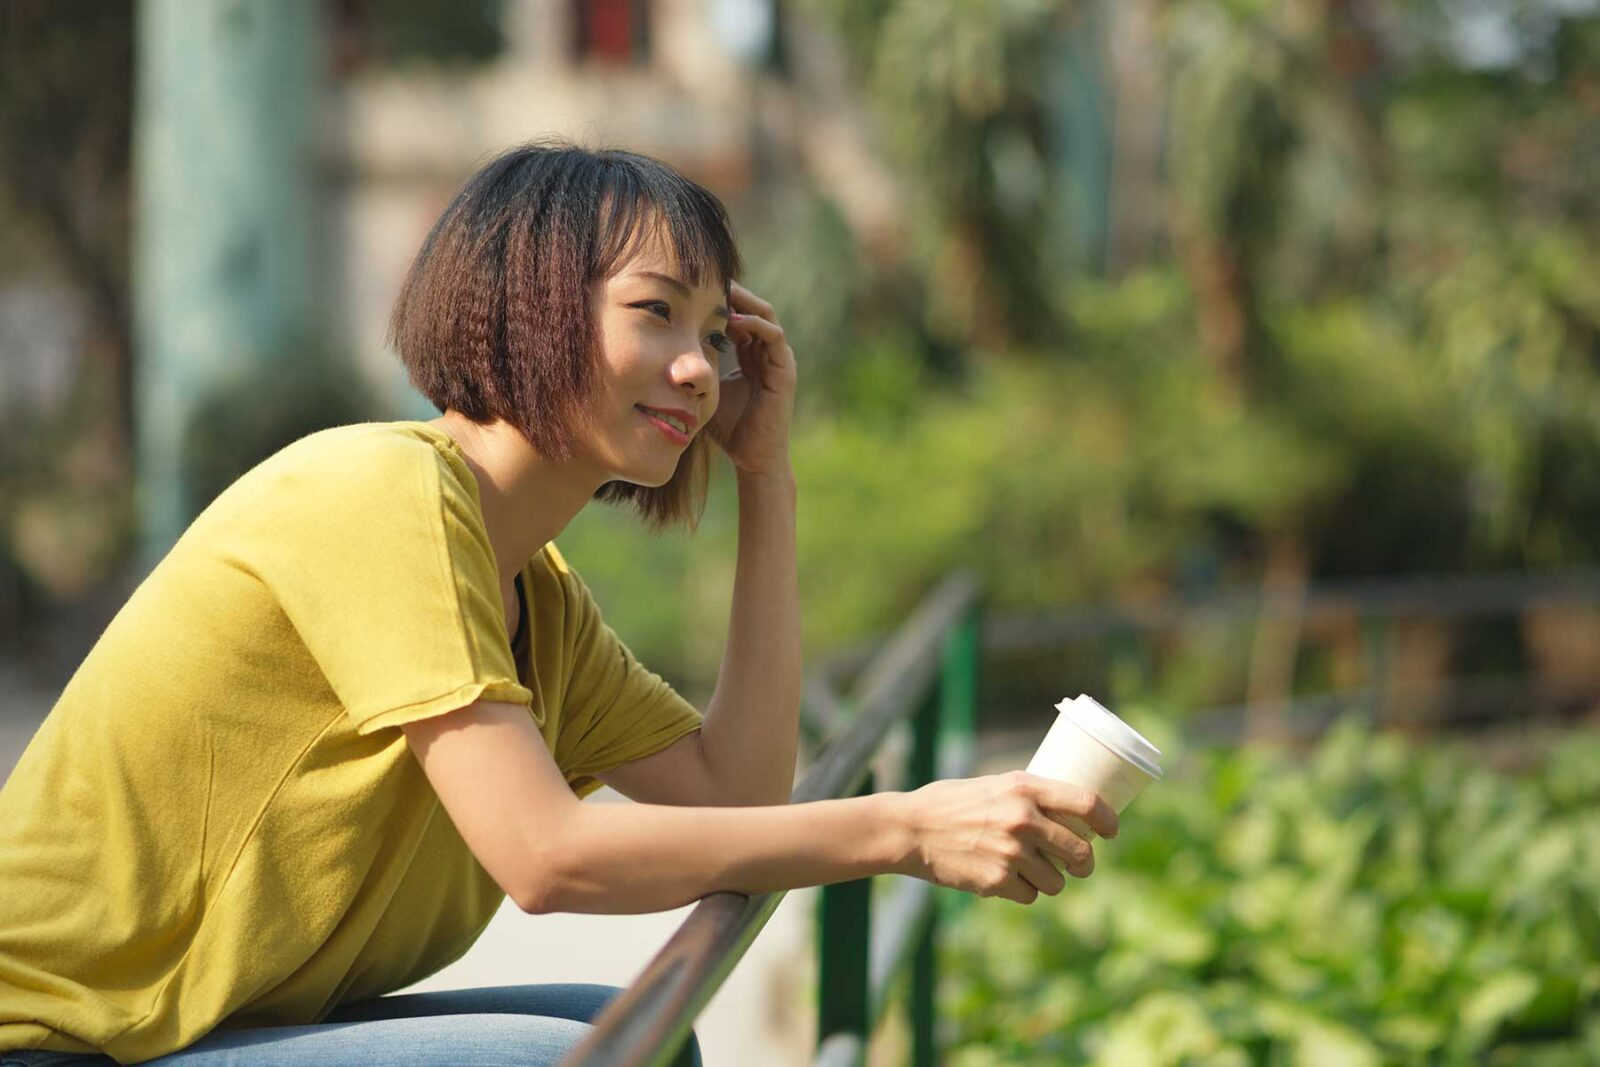 Smiling woman drinking a coffee in a park